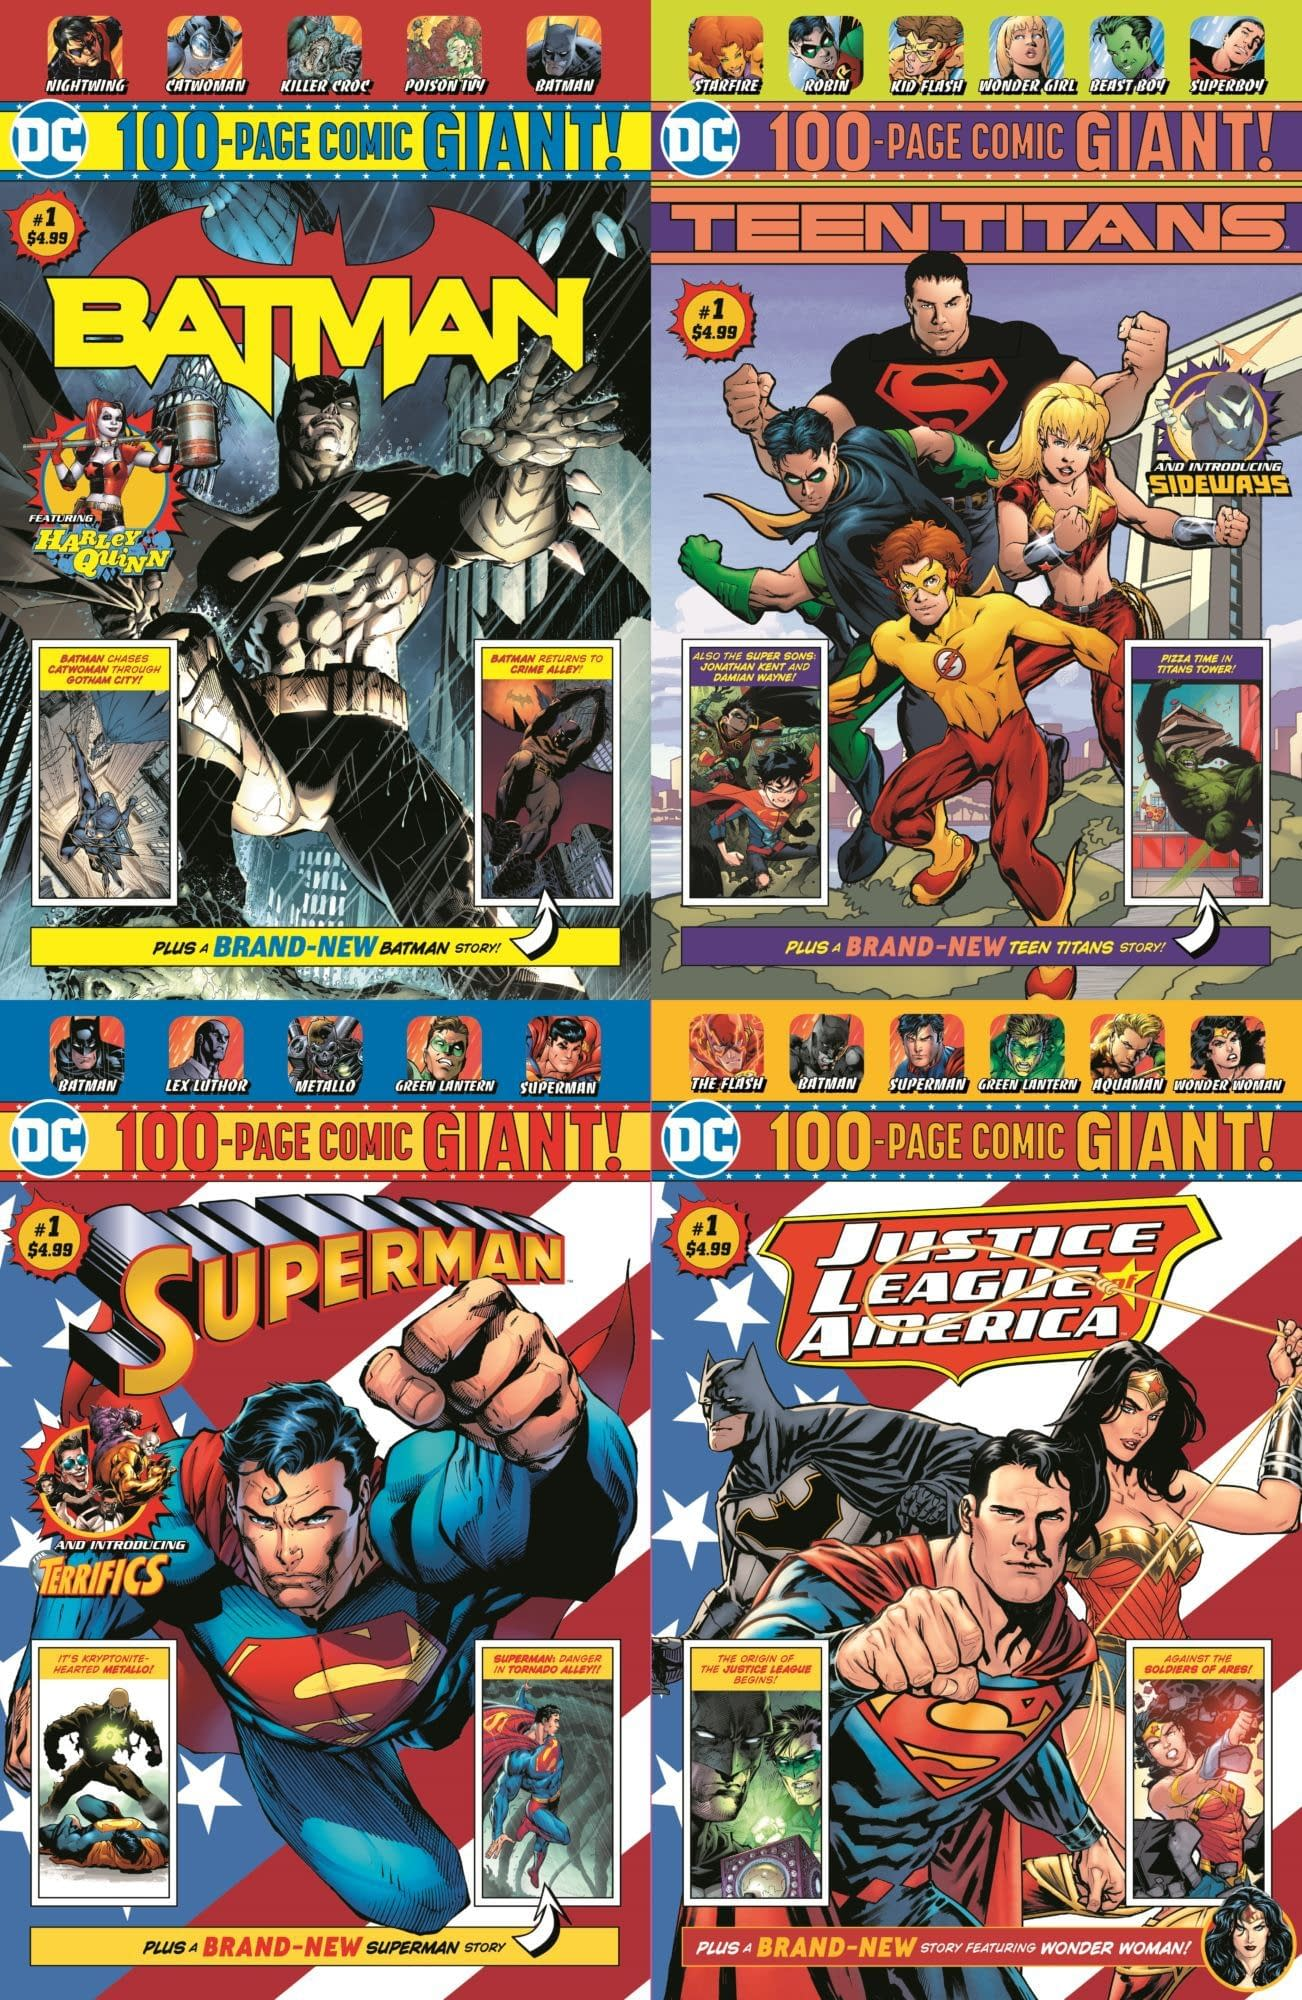 DC Replaces Walmart 100-Page Giants With Four-Packs of Comics.